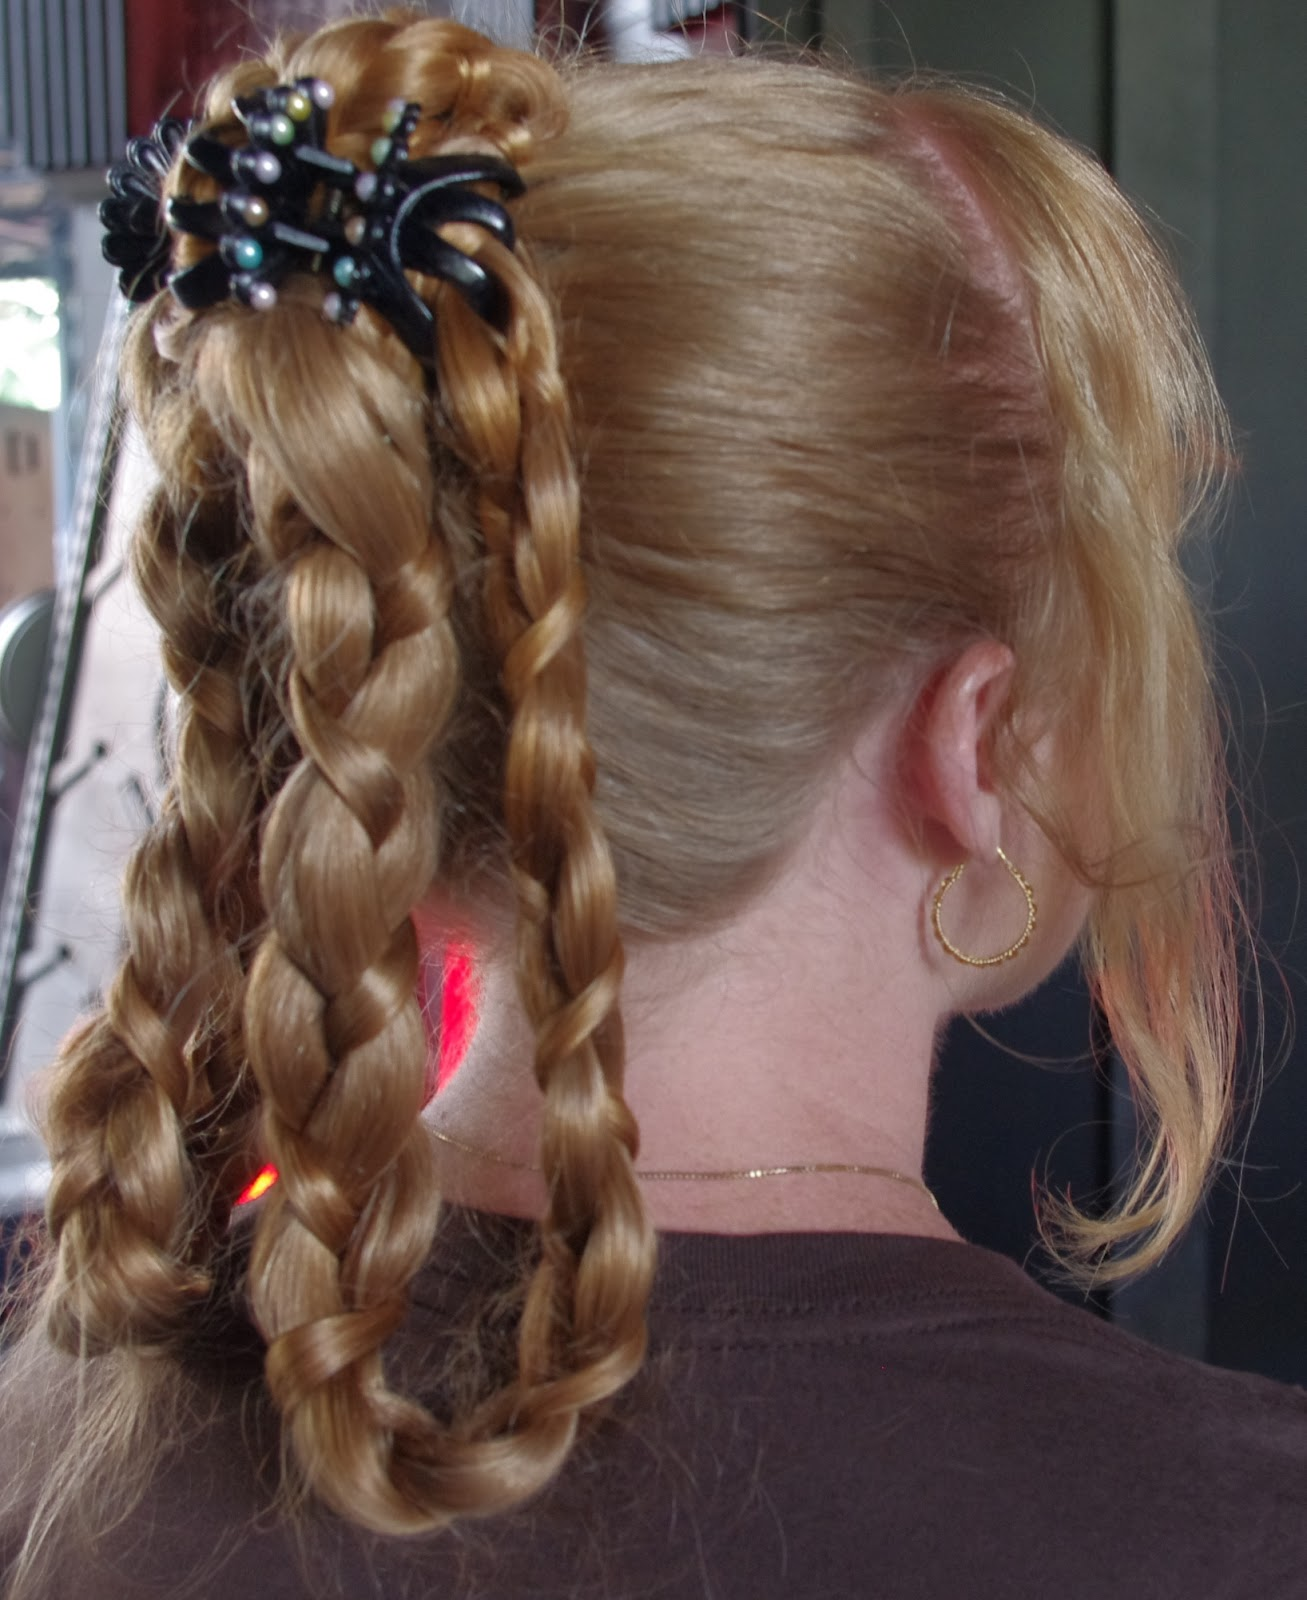 Princess Leia May The 4th Be With You: Braids & Hairstyles For Super Long Hair: Princess Leia's